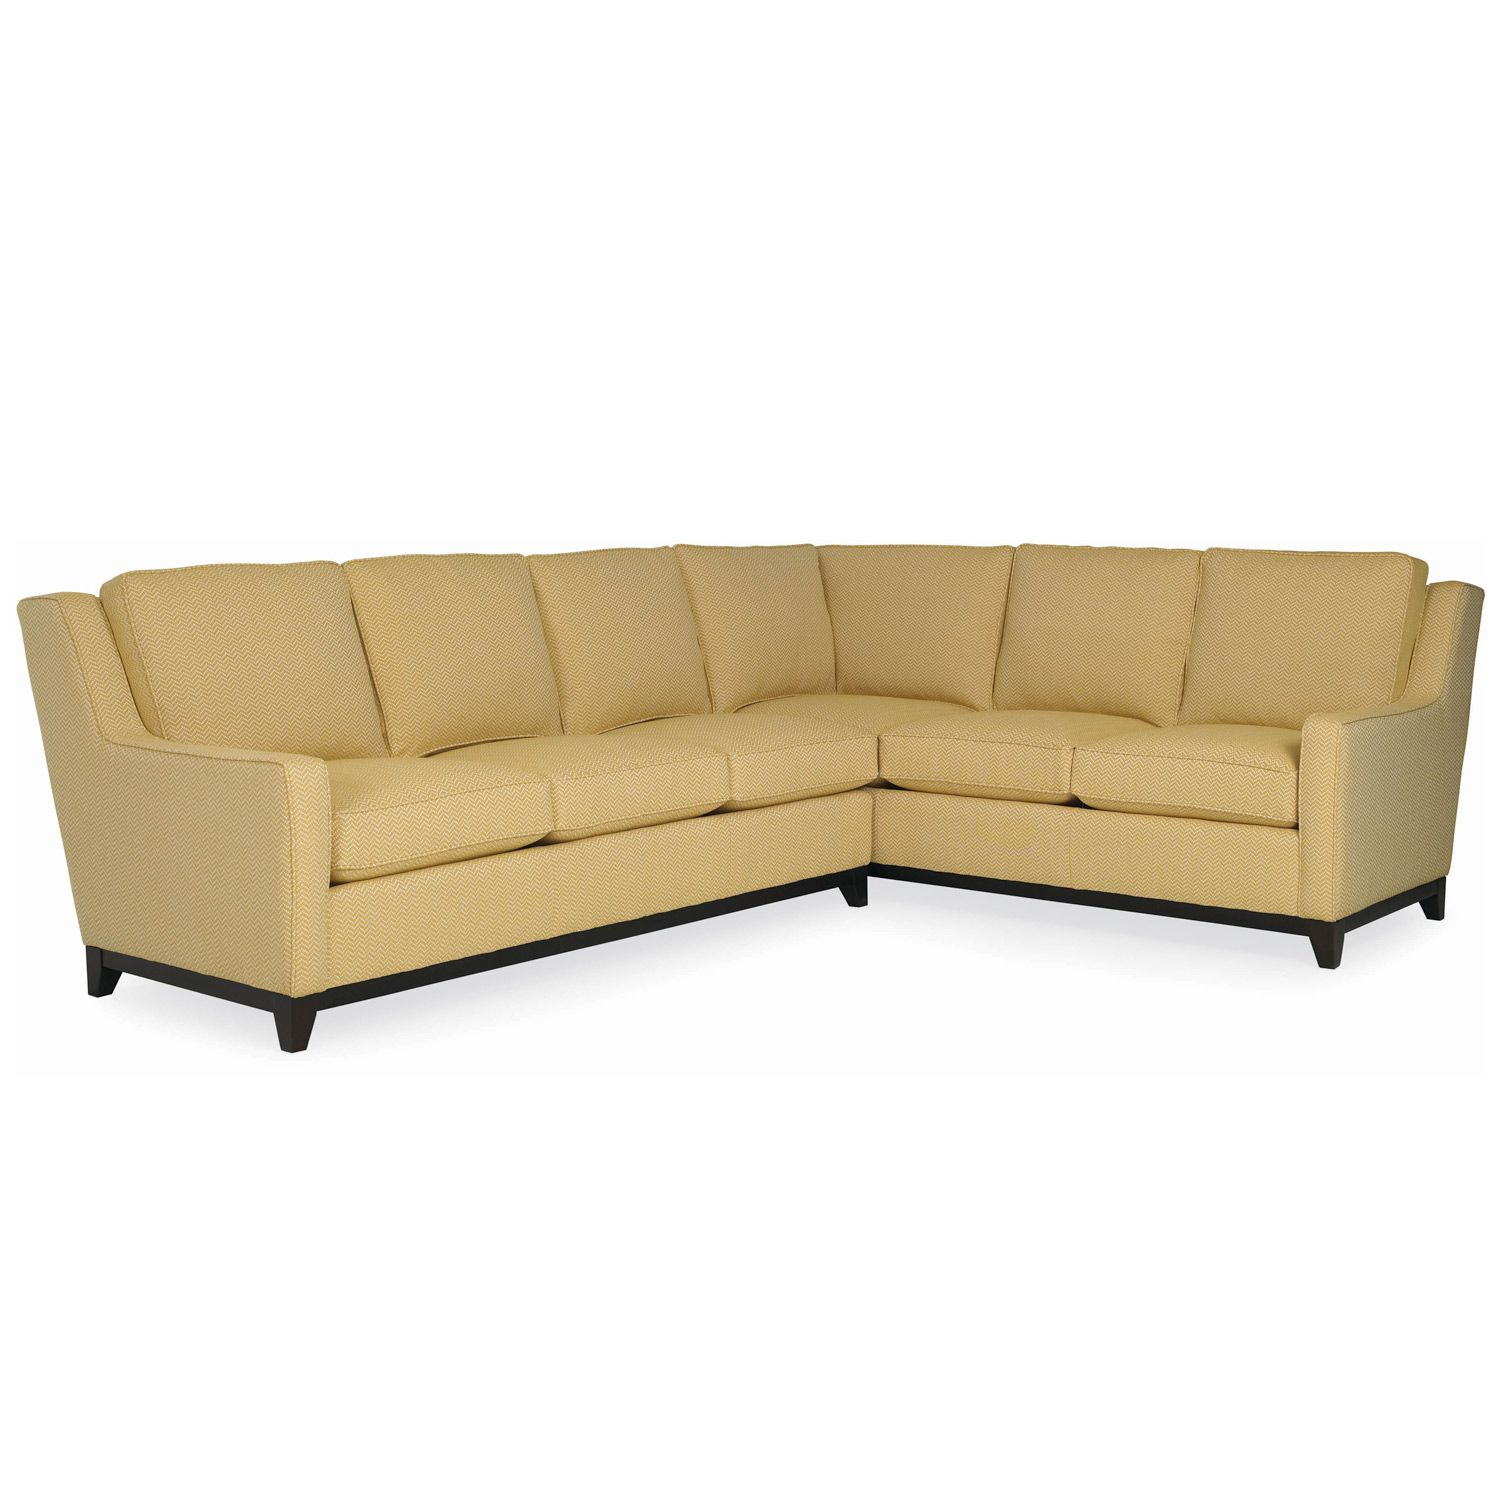 The carter sectional revisits mid century minimalism and updates it for modern entertaining needs plush square cushions invite for comfort seating and can